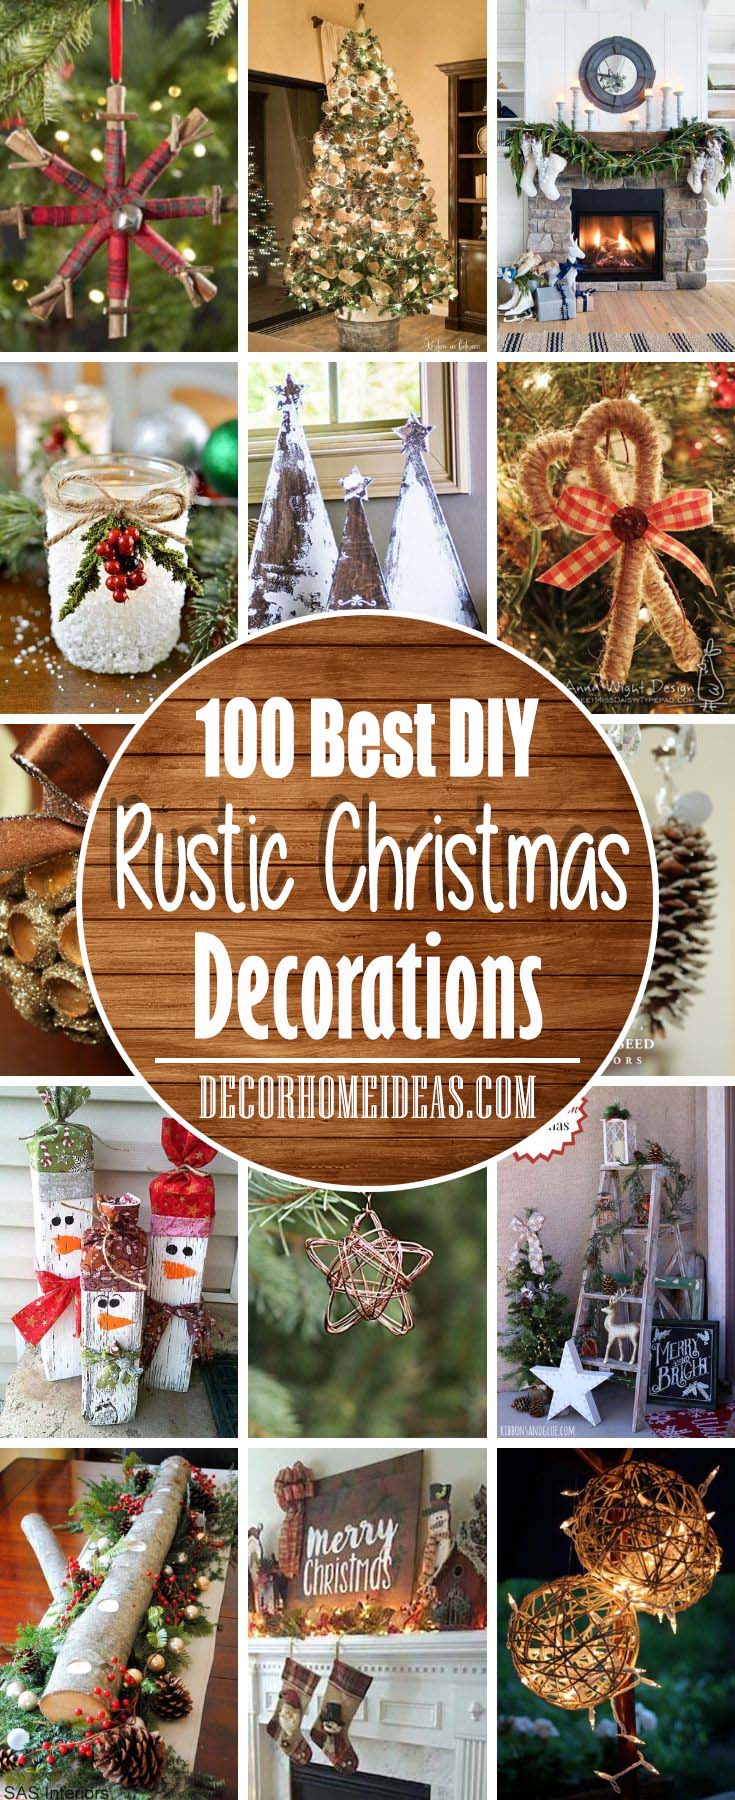 100 Rustic Christmas Decorations For A Warm Cozy Home Decor Home Ideas